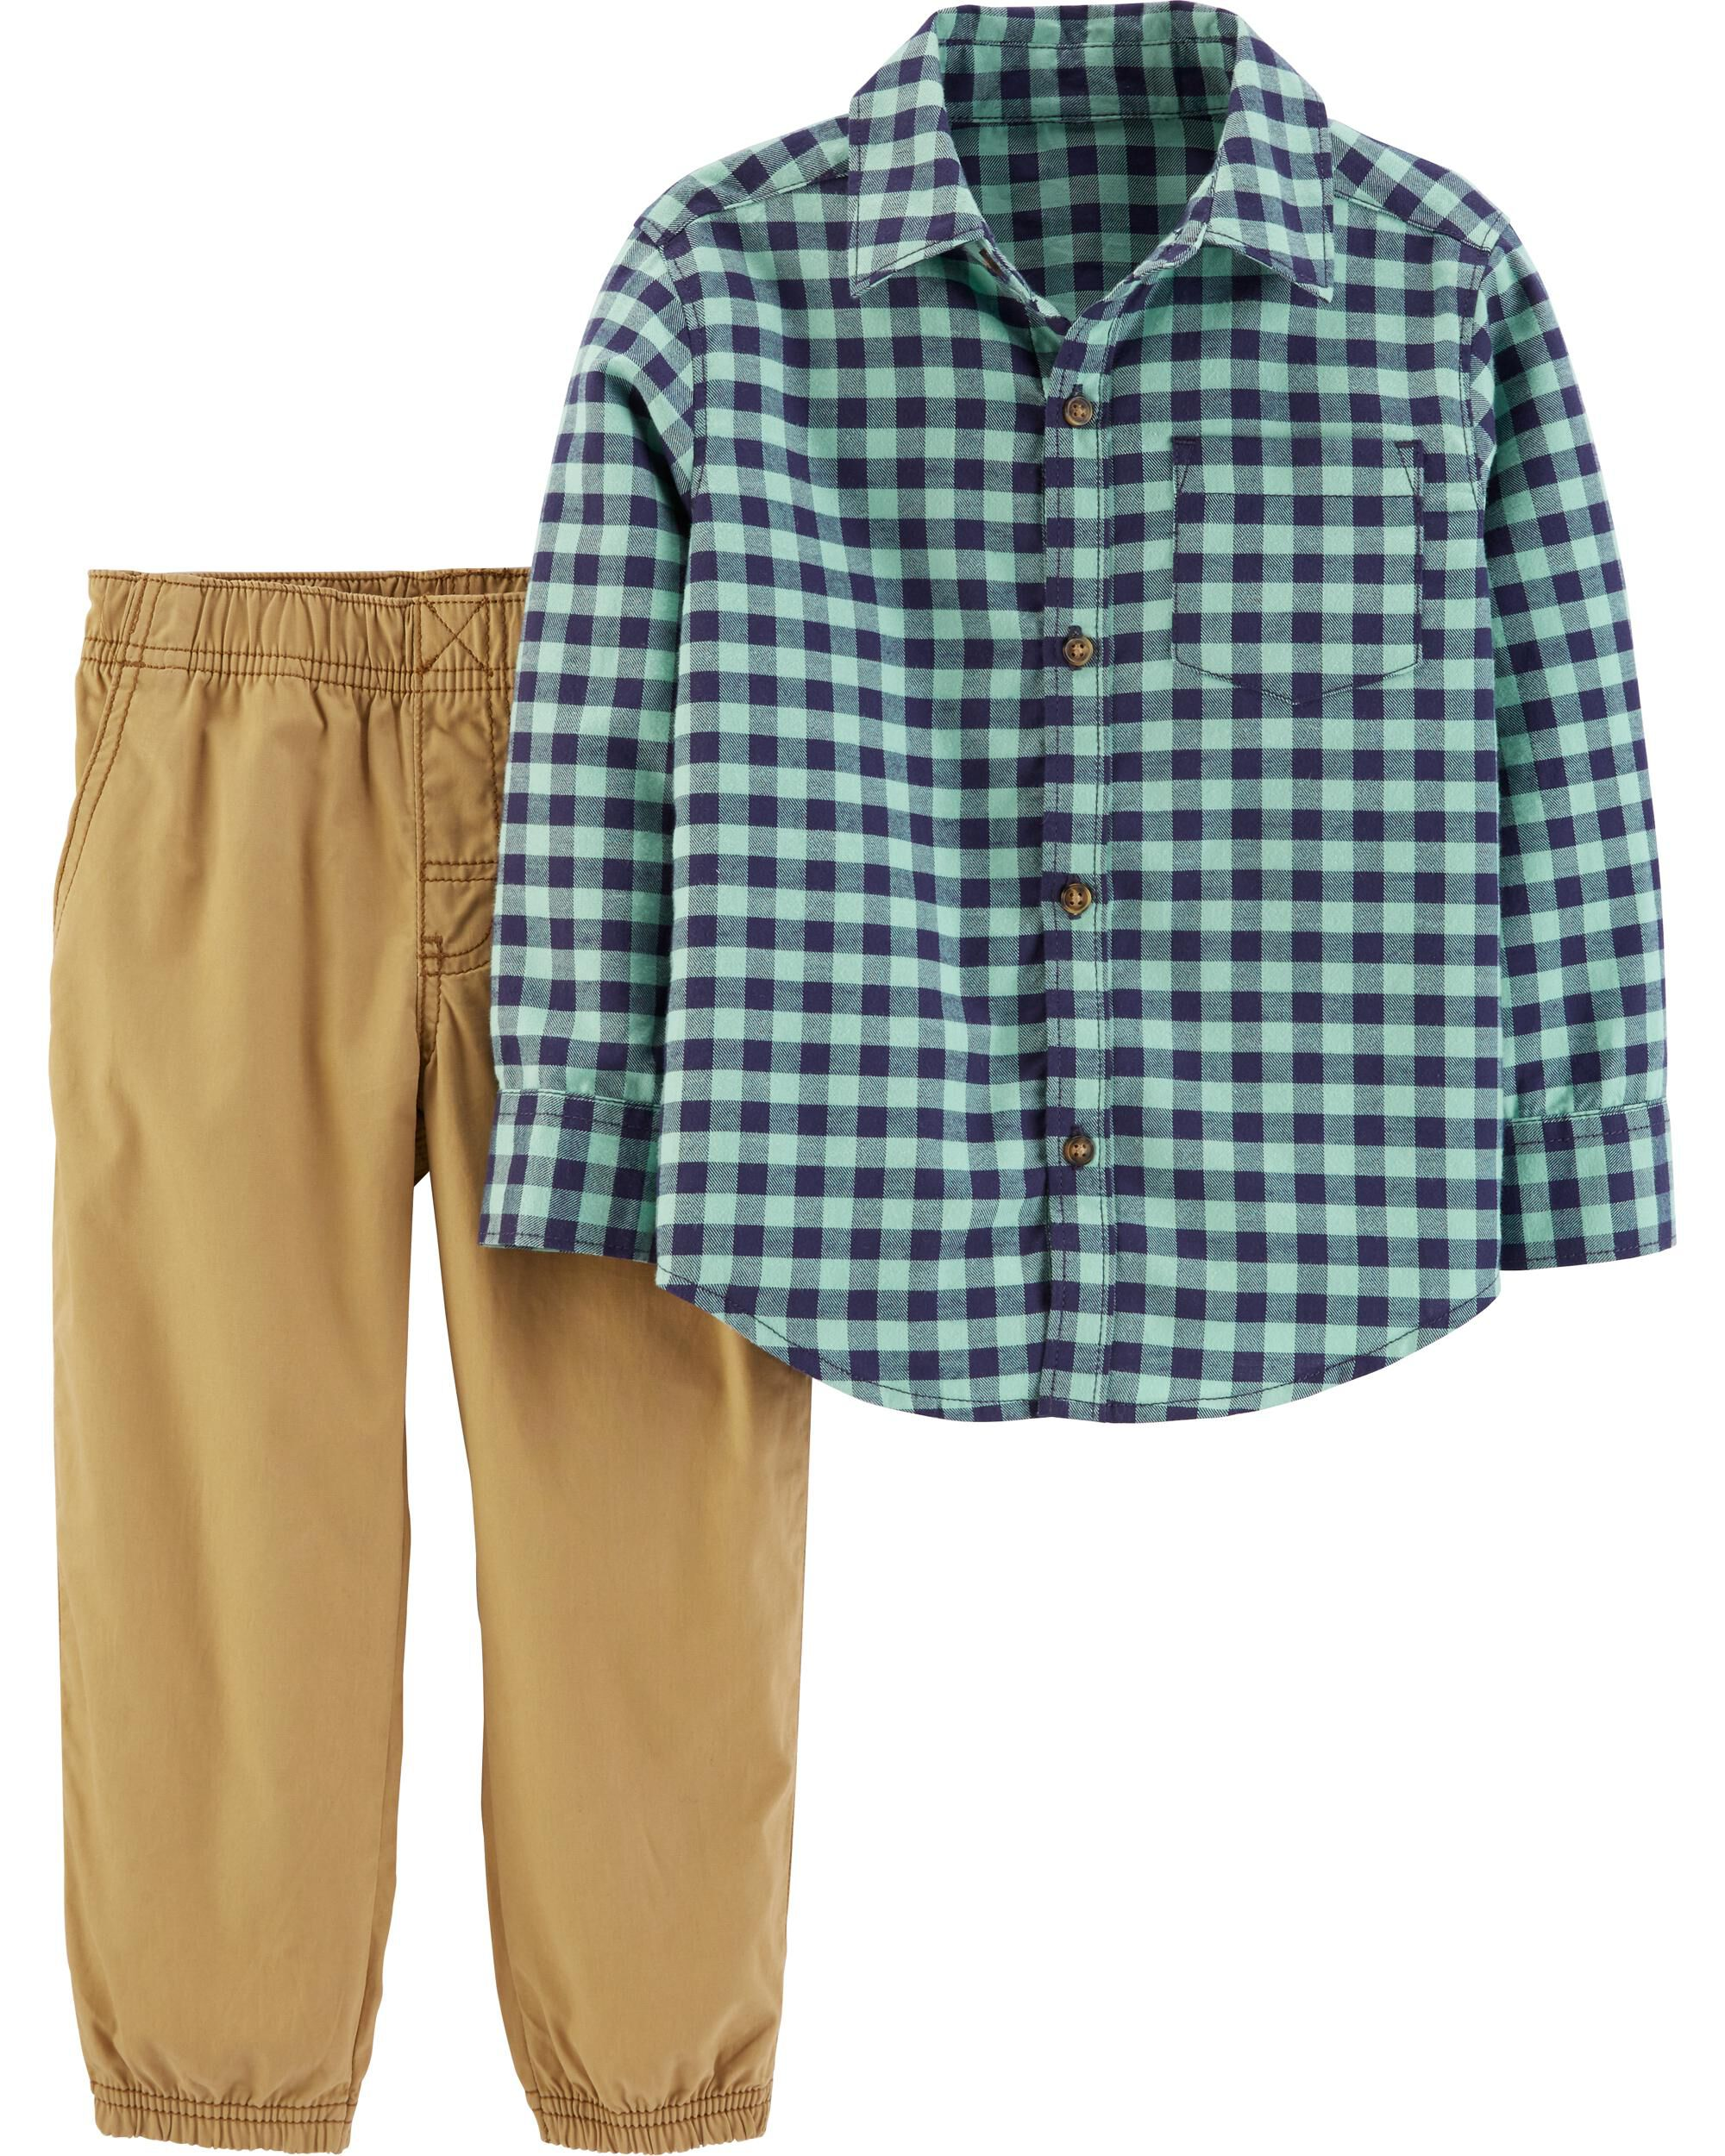 *CLEARANCE* 2-Piece Gingham Button-Front Top & Poplin Pant Set